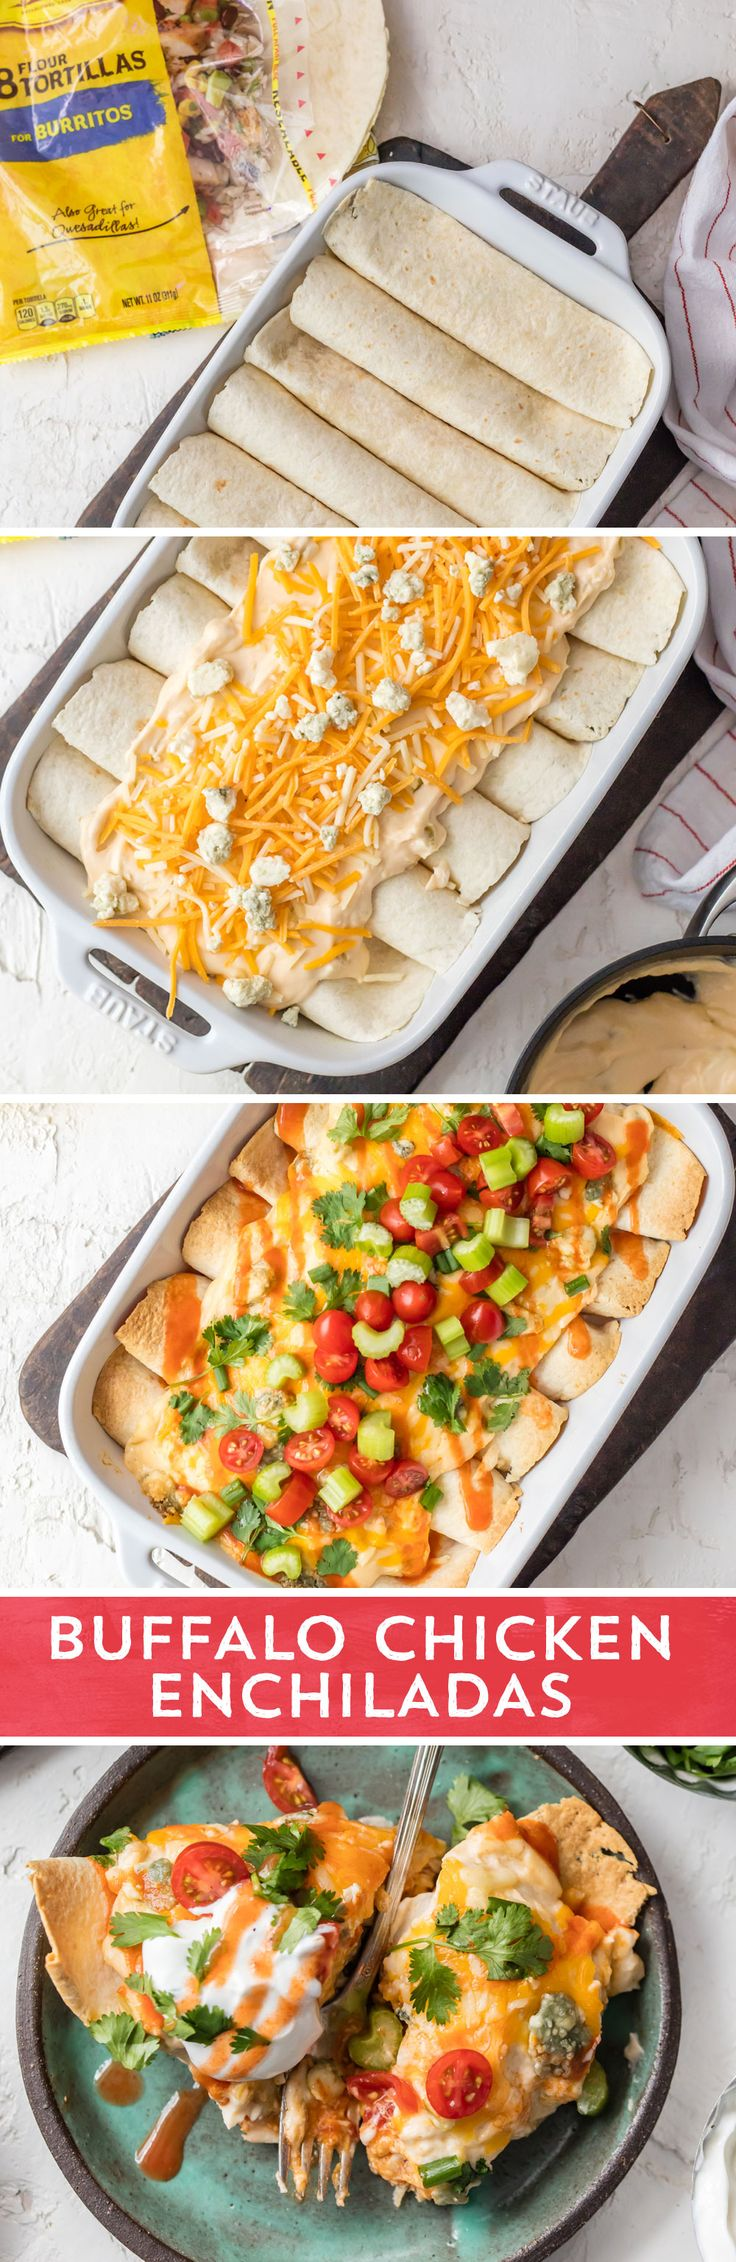 Craving buffalo chicken? These Buffalo Chicken Enchiladas from @cookierookiebec are the perfect twist on your favorite game day dip! They're the perfect combination of creamy and spicy, sure to be a hit for dinner any night, or as a game day snack! This quick and easy recipe is ready to eat in 40 minutes - and is as fool-proof as they come!